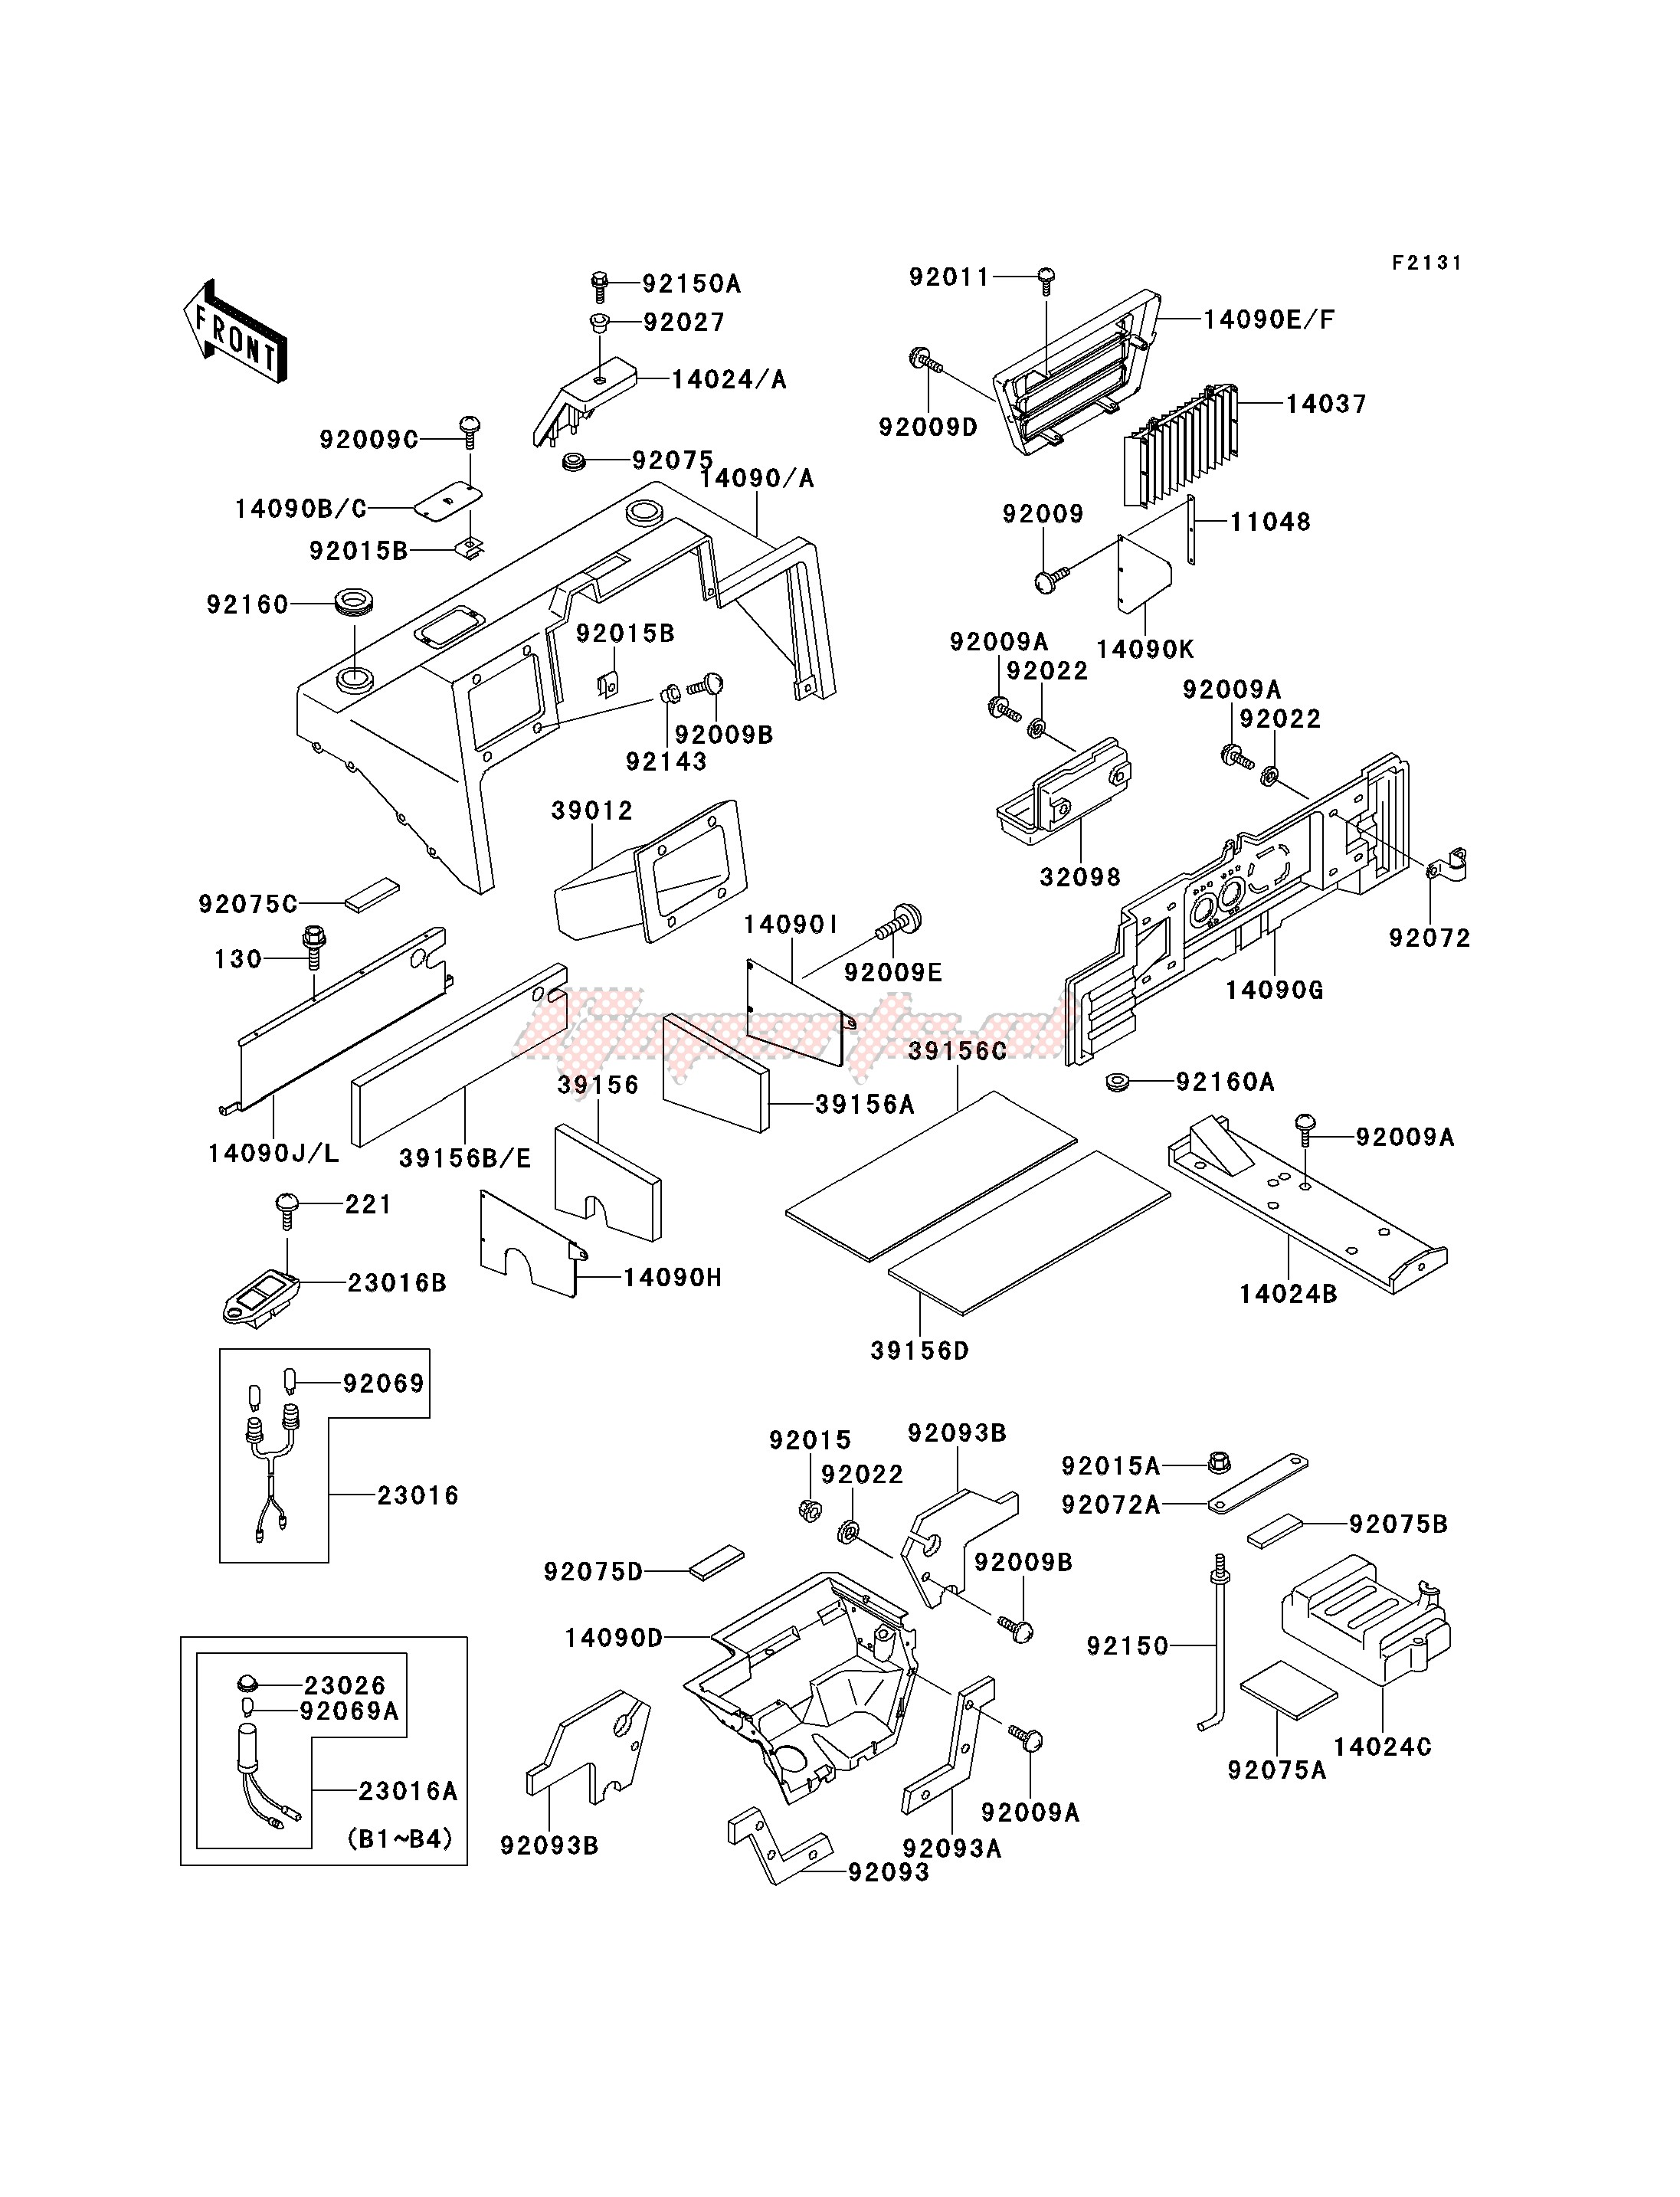 Frame-FRAME FITTINGS -- COVER- -